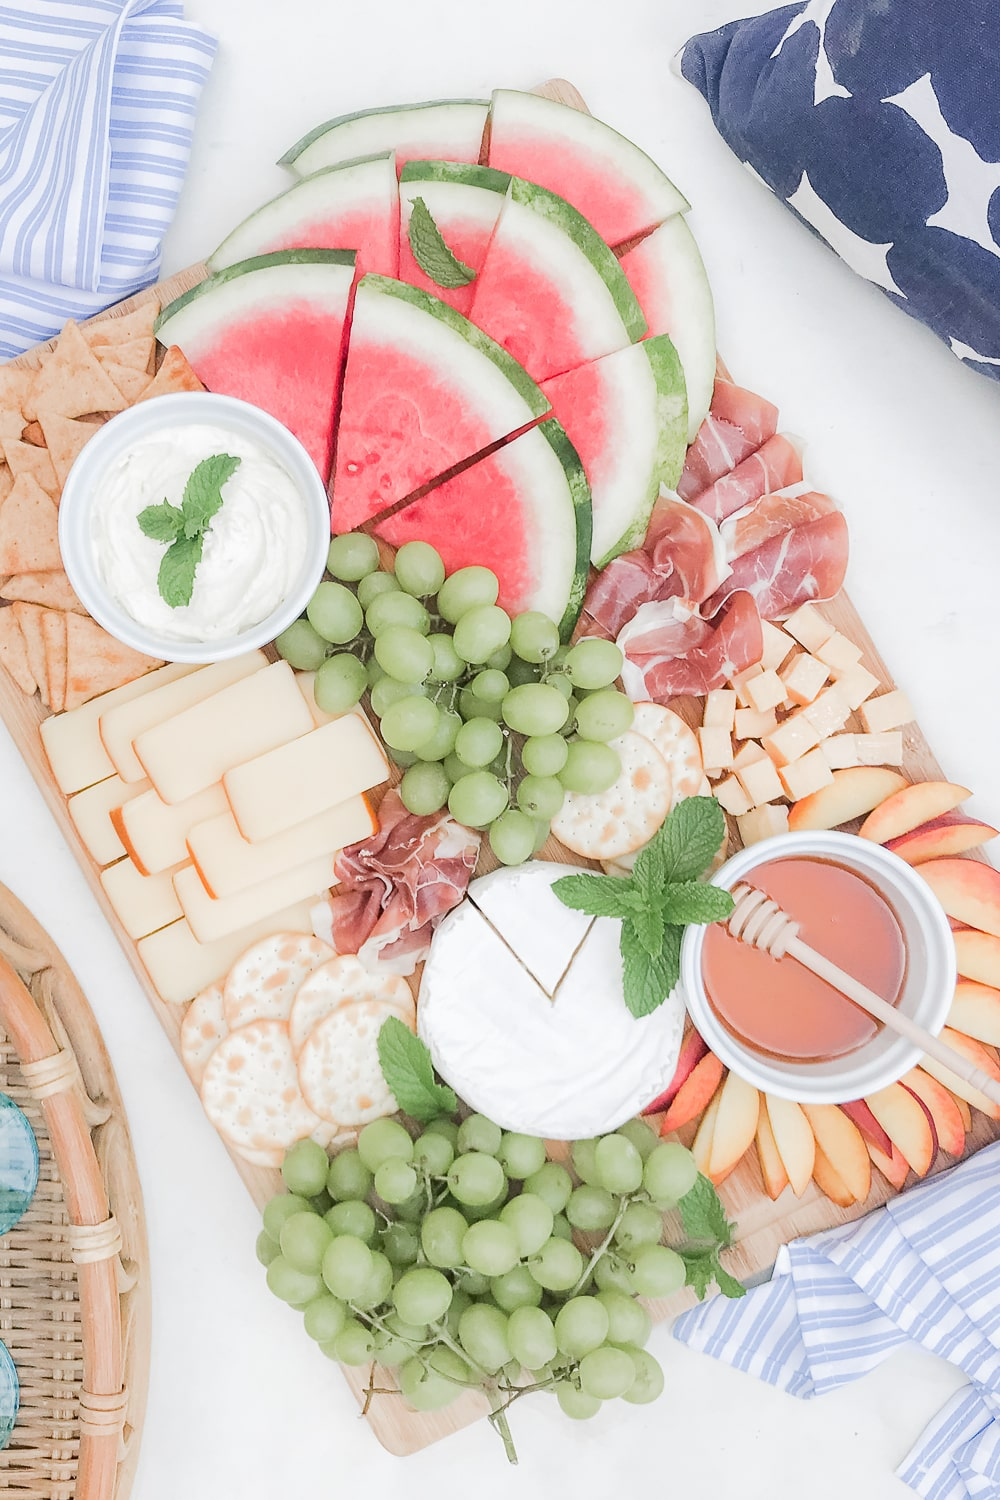 Summer charcuterie board ideas from blogger Stephanie Ziajka on Diary of a Debutante